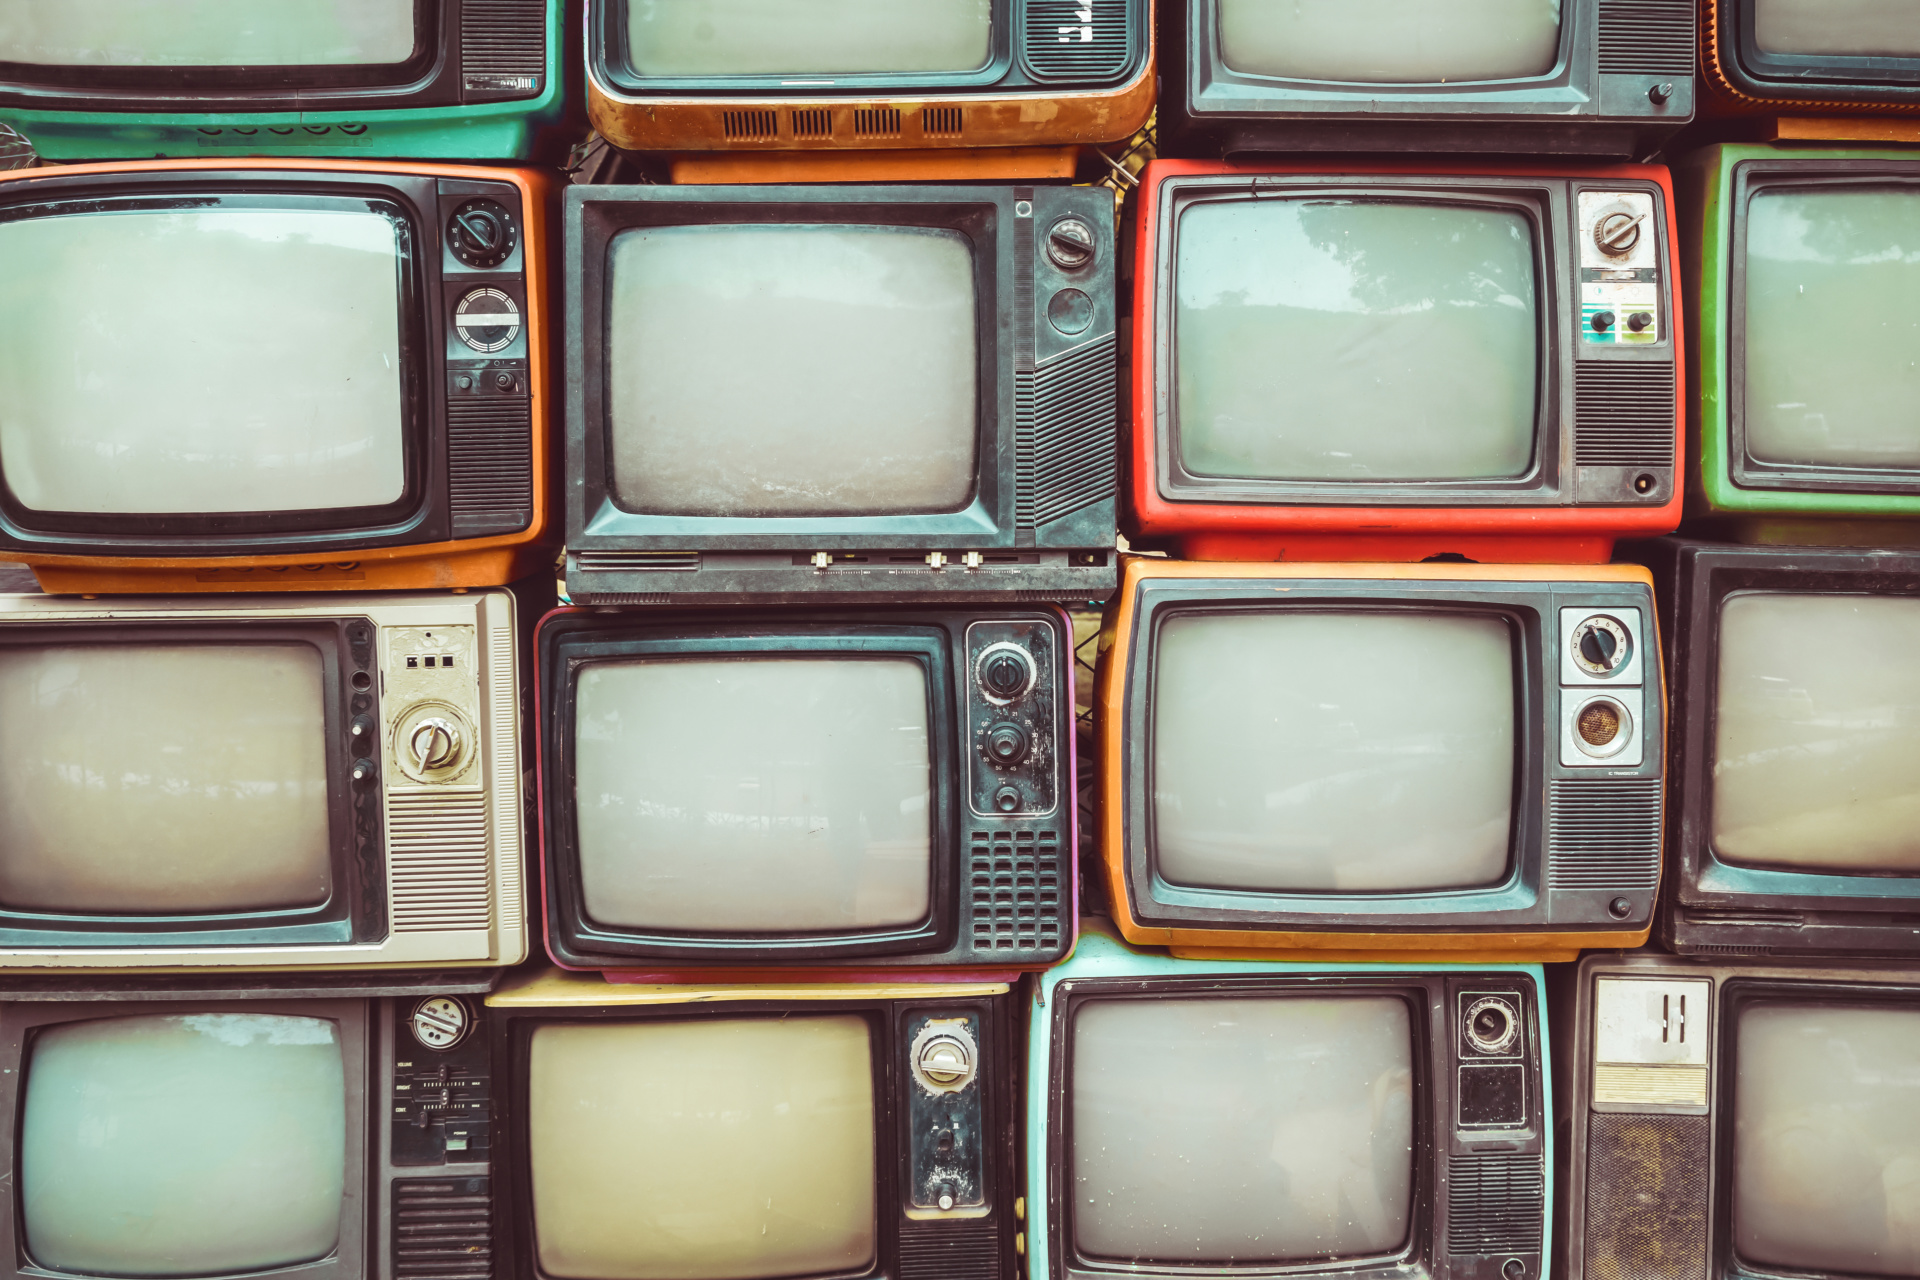 What's Killing TV?